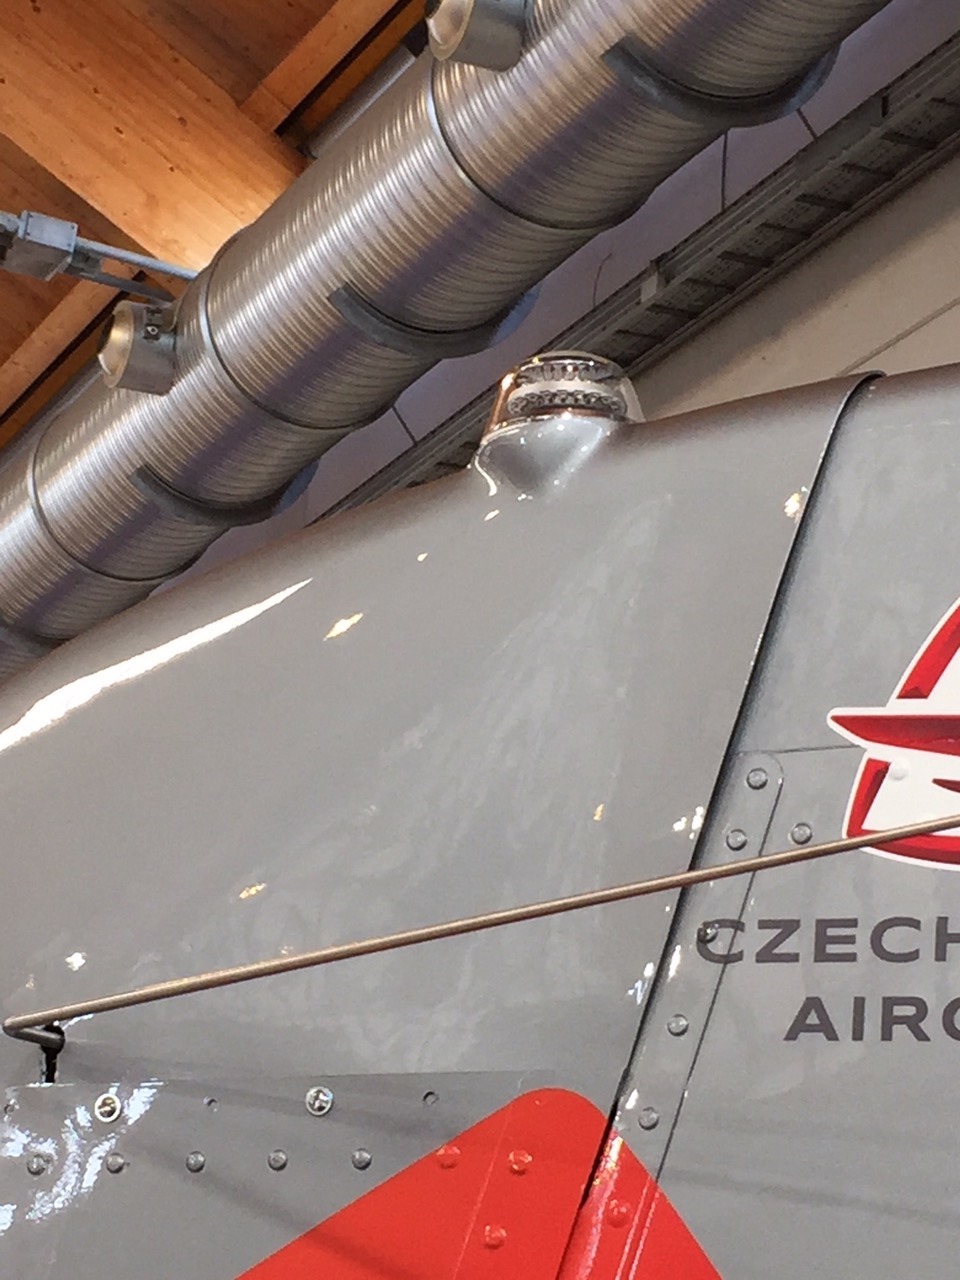 Aero Friedrichshafen Aveo Anti-collision light